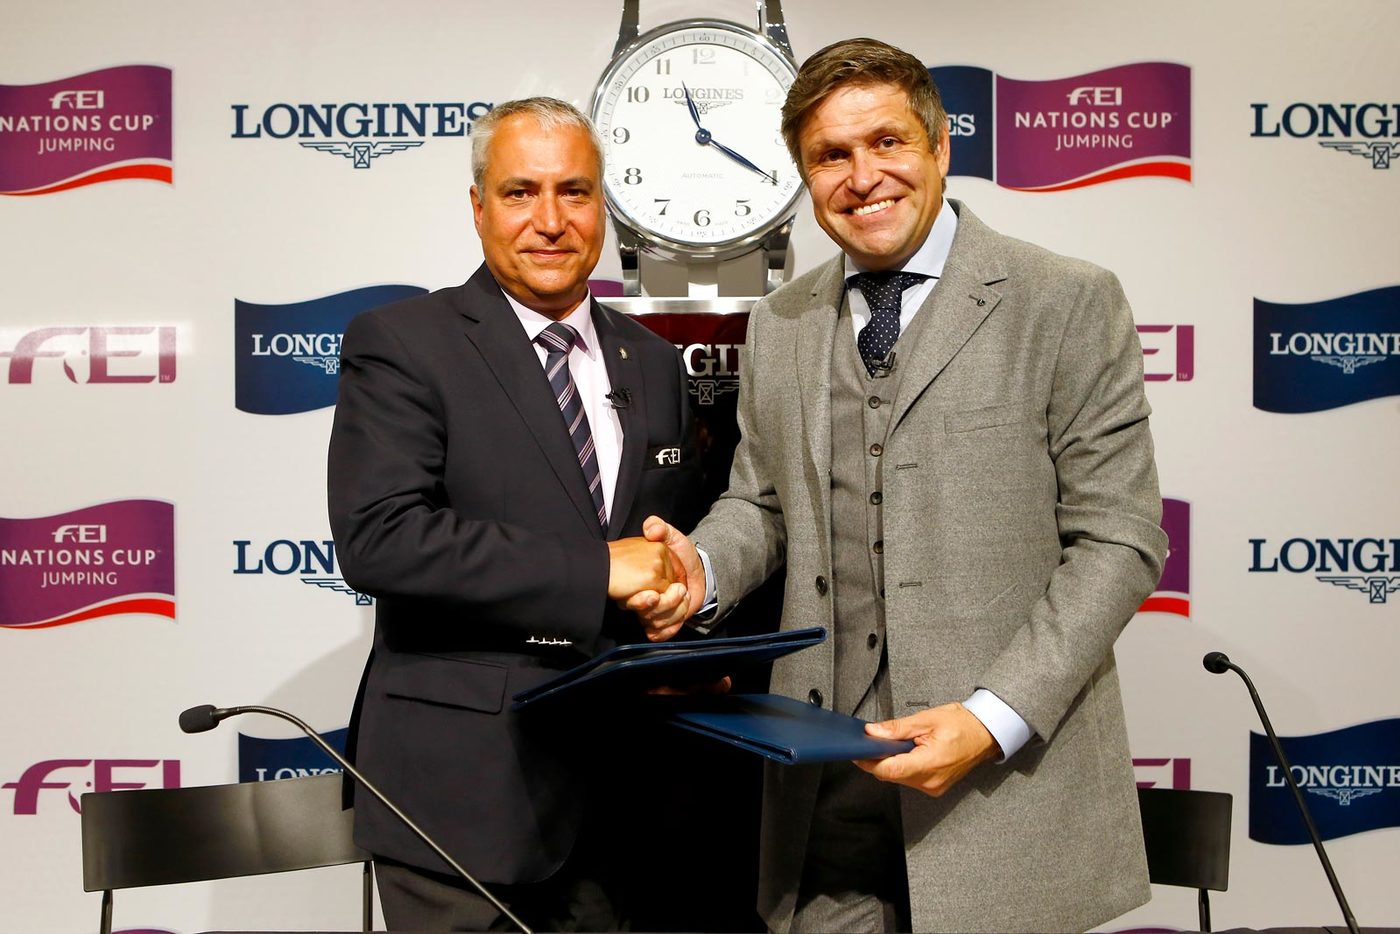 Longines Show Jumping Event: Longines signs long-term title partnership of FEI Nations Cup™ Jumping and extends global agreement as FEI Top Partner 2